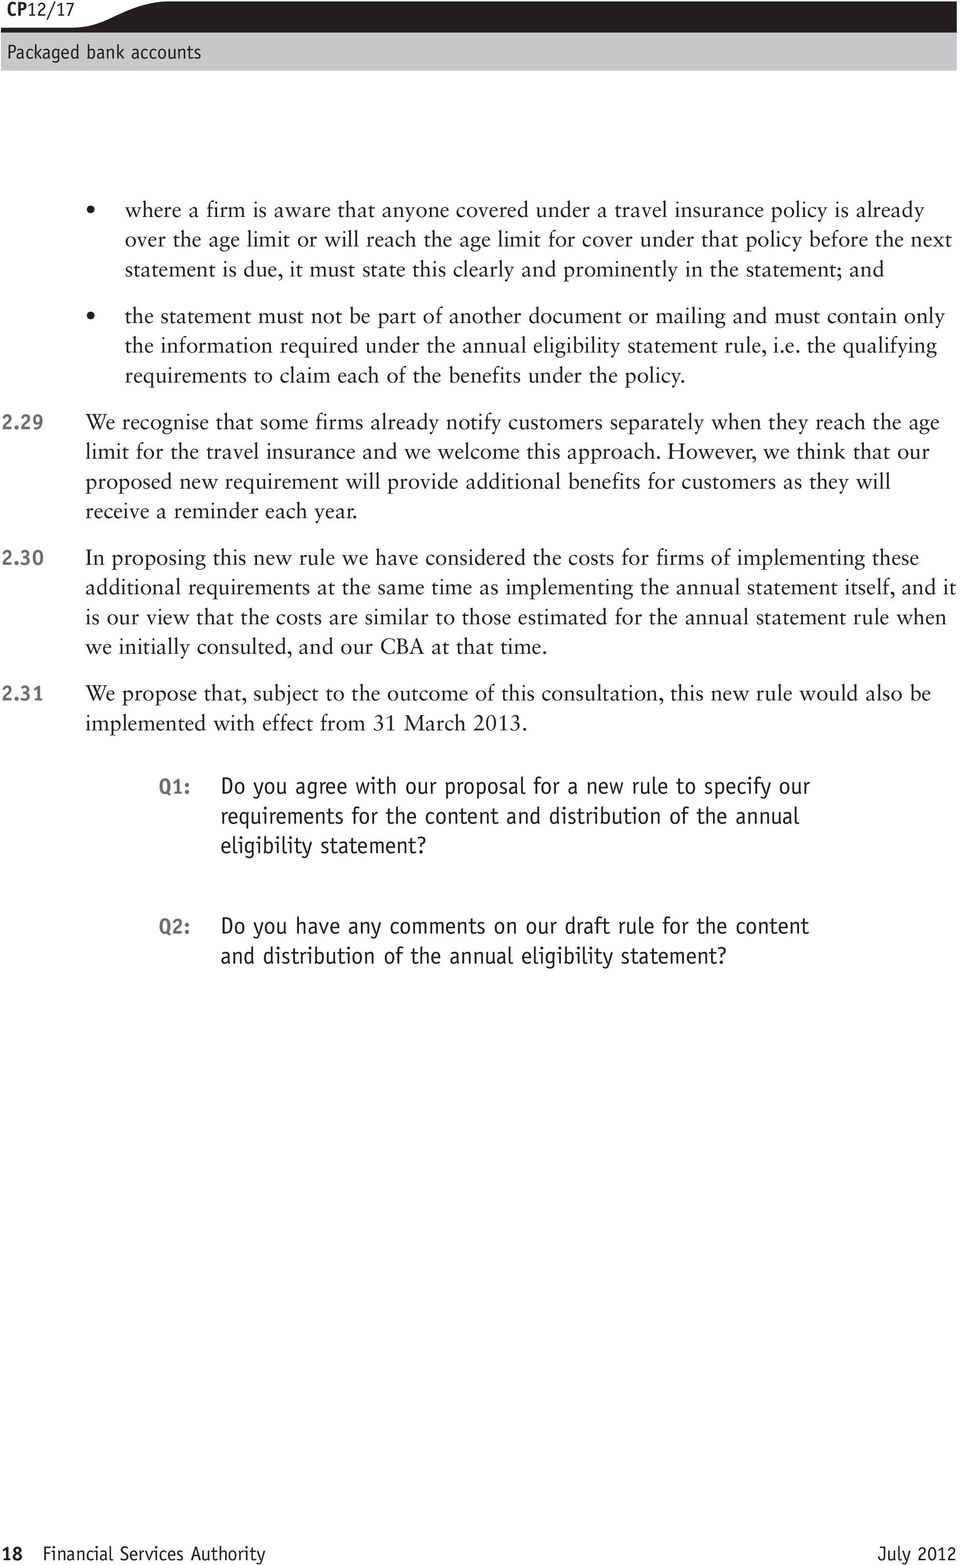 eligibility statement rule, i.e. the qualifying requirements to claim each of the benefits under the policy. 2.